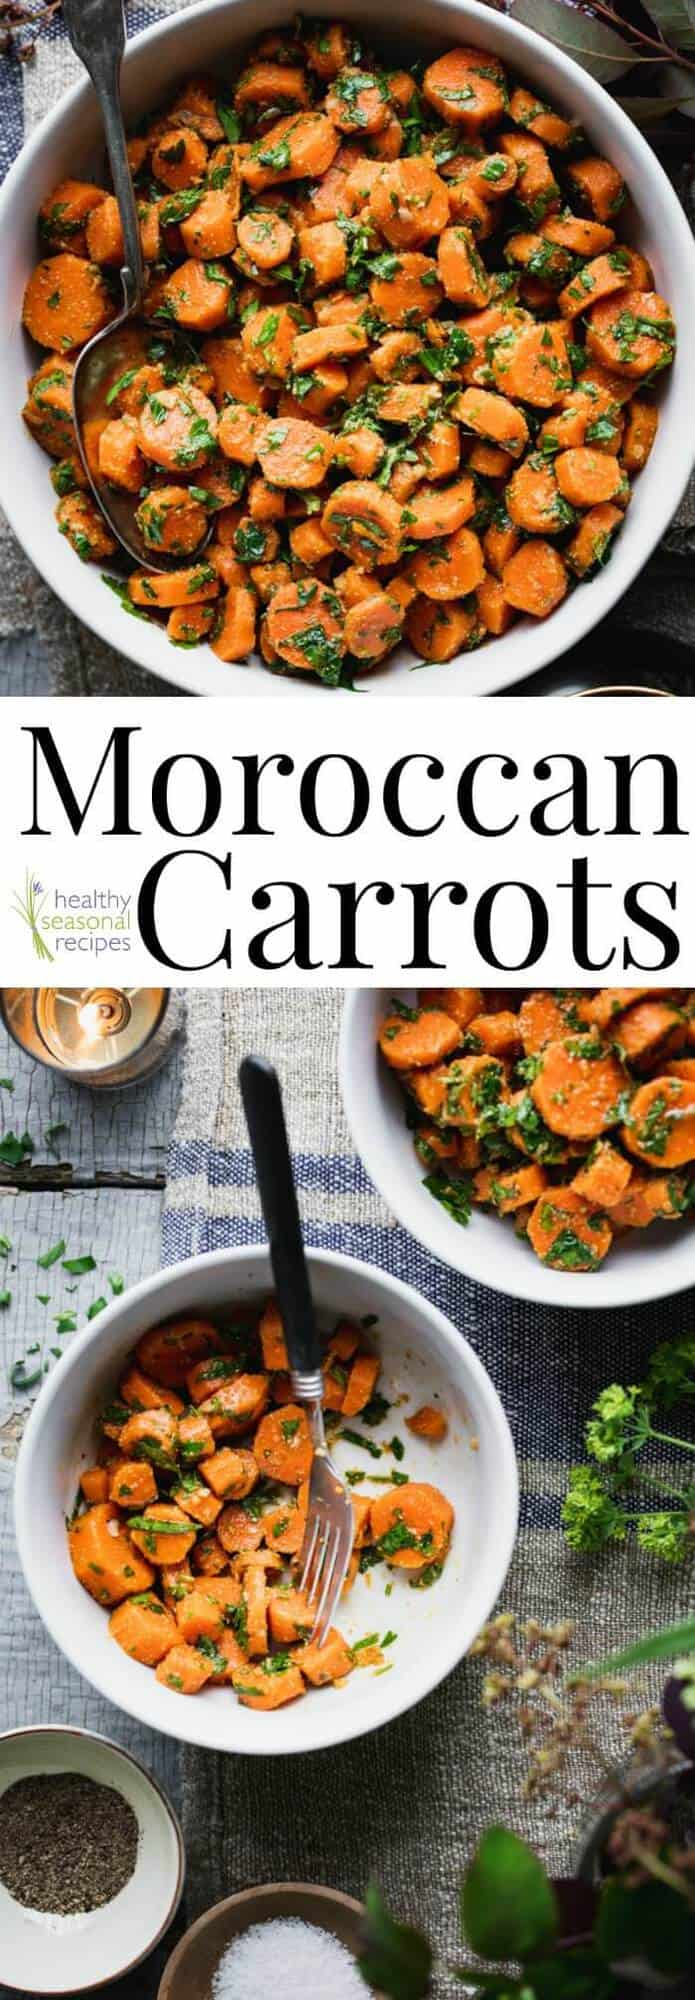 These Moroccan Carrots are a favorite healthy and flavorful side dish. They are loaded with garlic, vinegar and cumin! They are a great make-ahead side dish for summertime potlucks, barbecues and parties because you can serve them room temperature or chilled. #carrots #healthy #moroccan #paleo #glutenfree #vegan #cleaneating